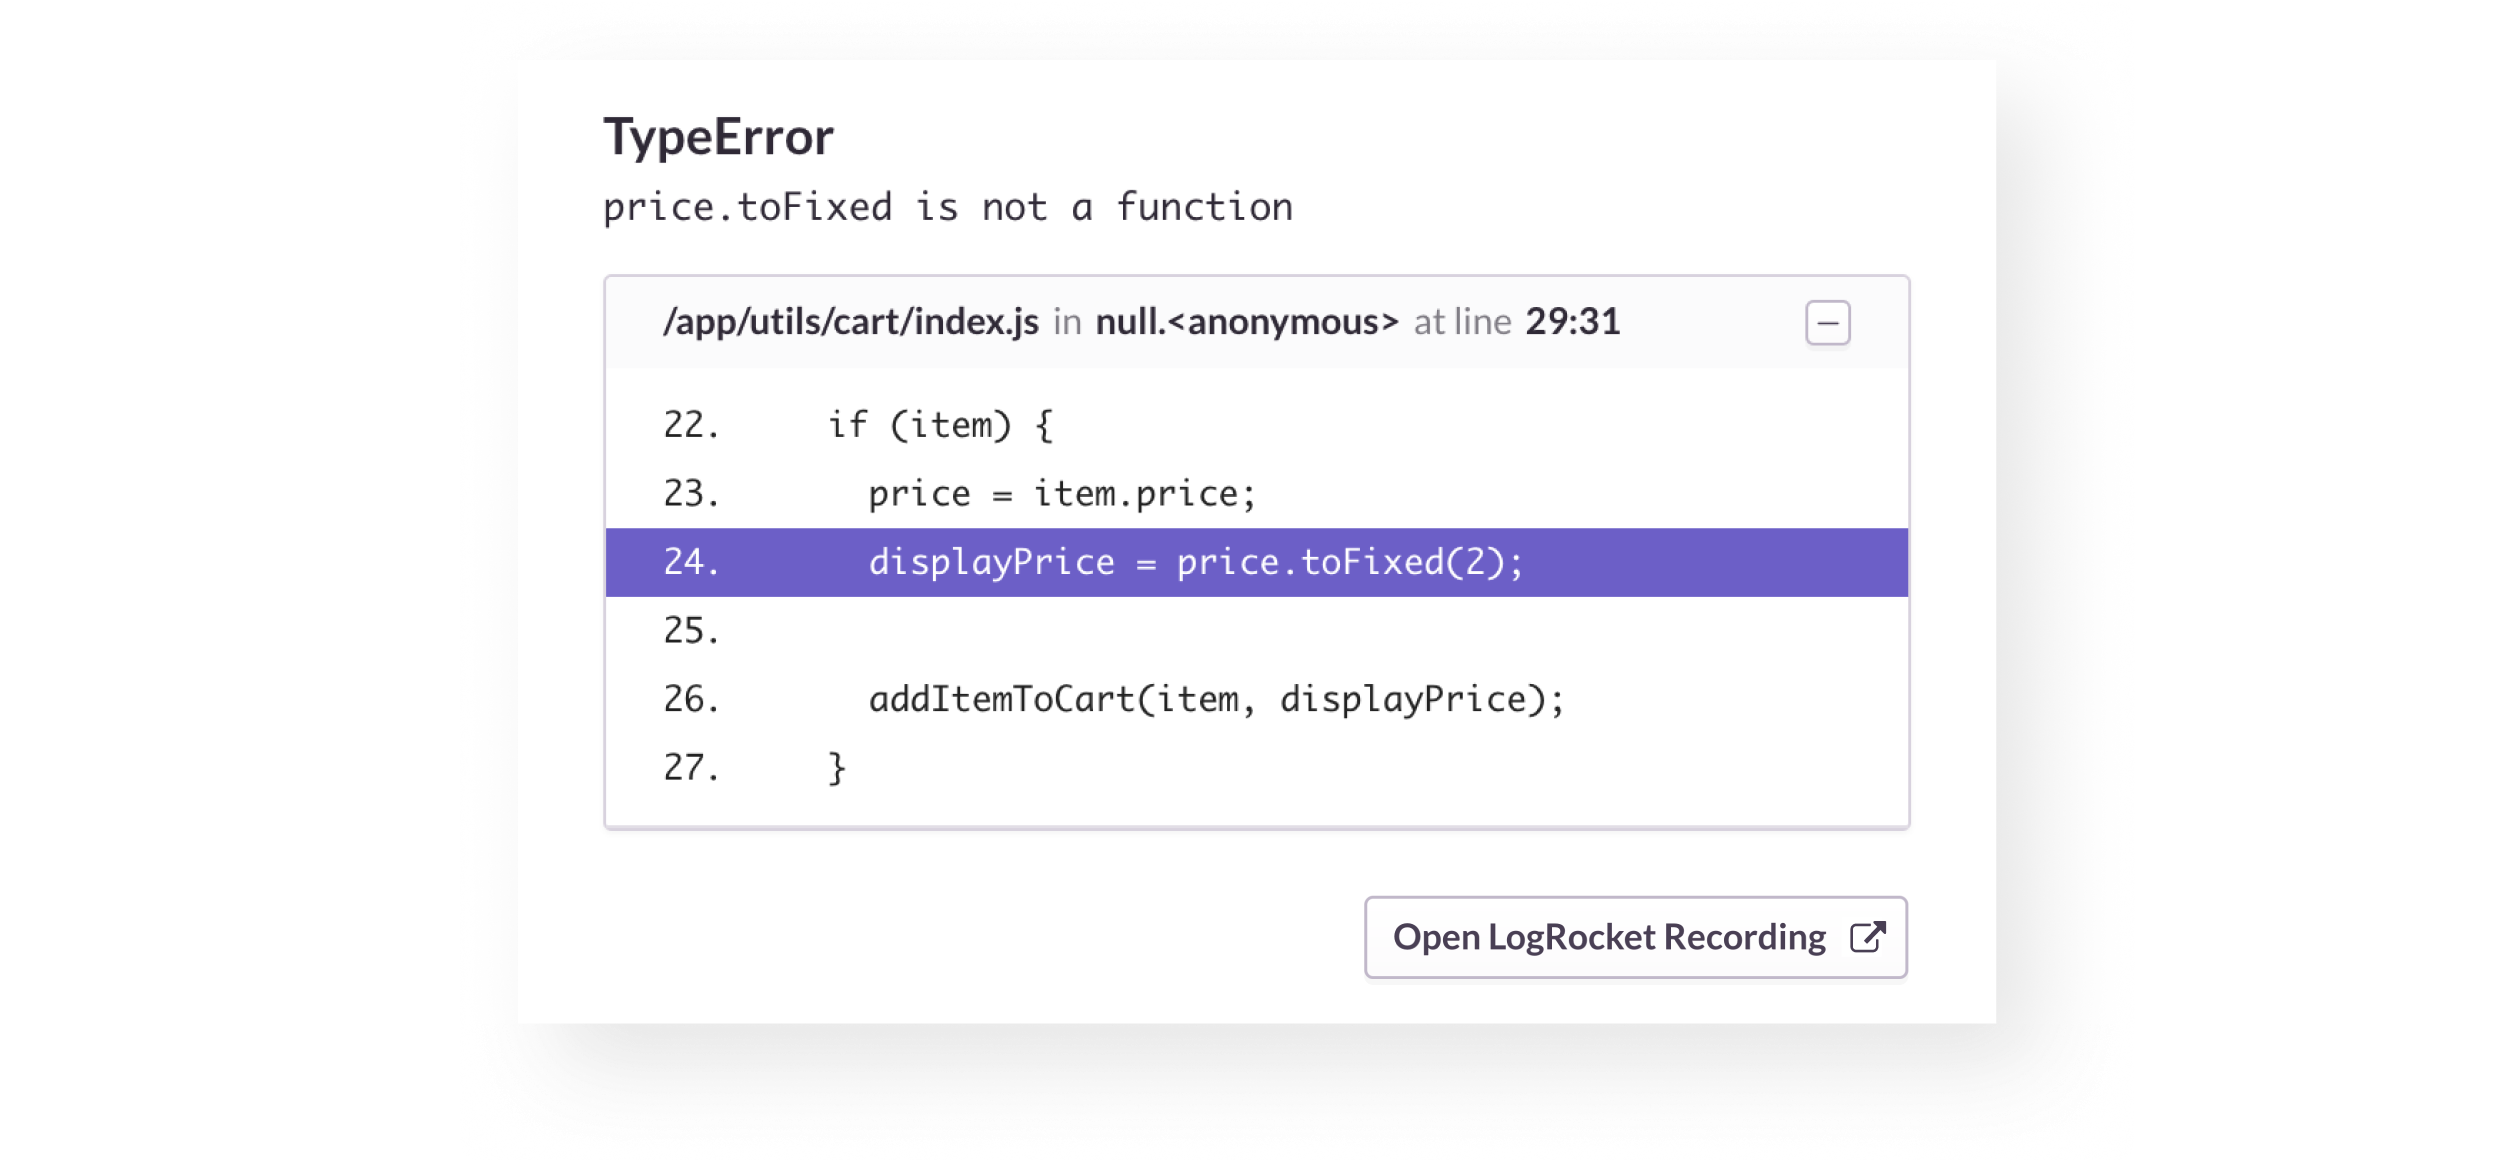 Did this exception affect the user experience? LogRocket has the answer.